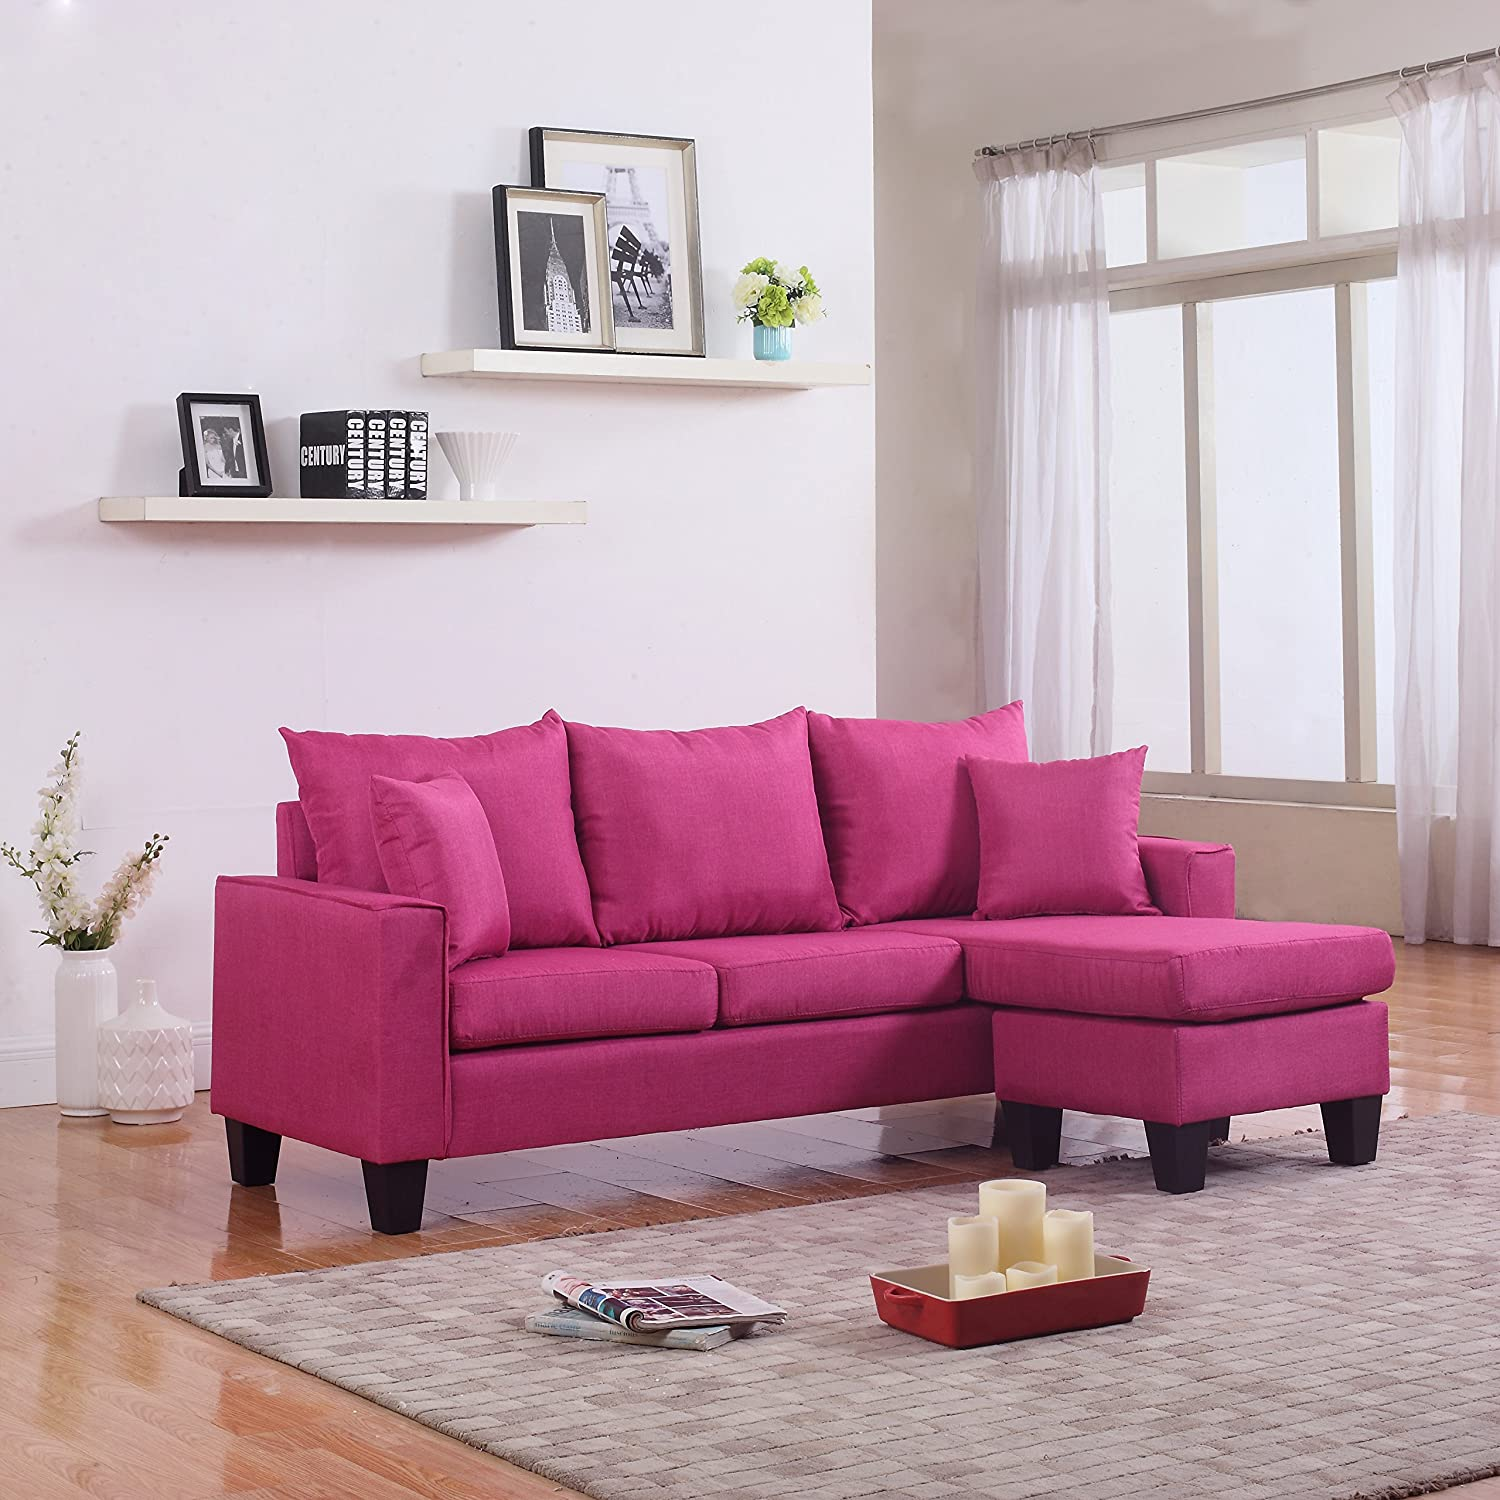 sofas your small sofa for com sectional spaces with table coffee cellerall best cool contemporary sectionals couch